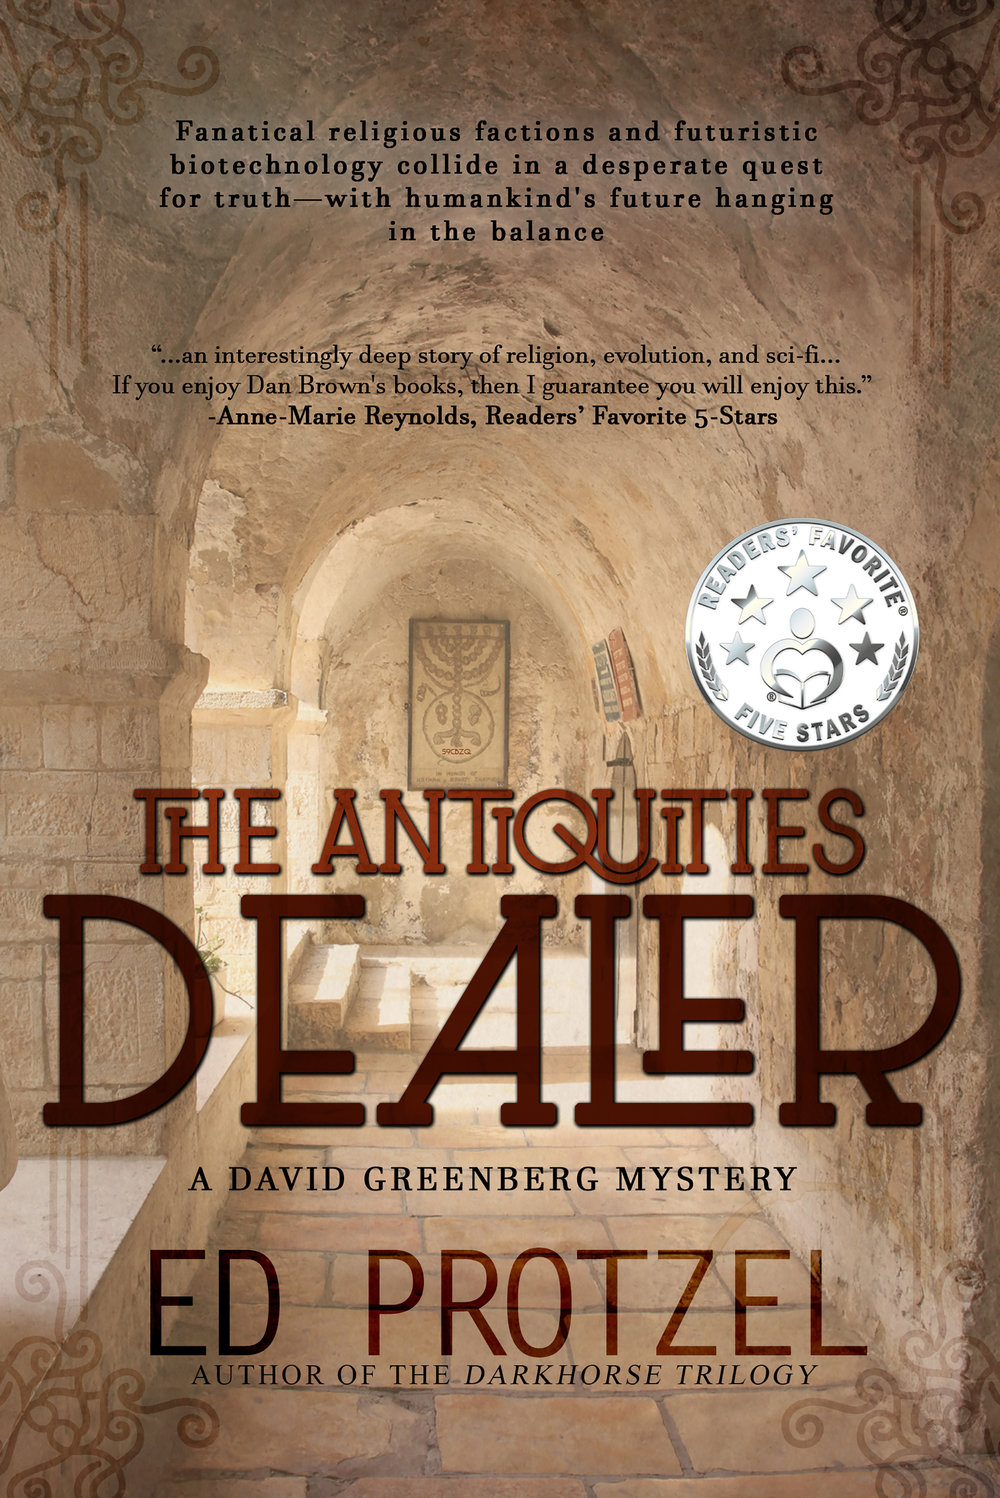 The Antiquities Dealer_6x9_paperback_FRONT.jpg